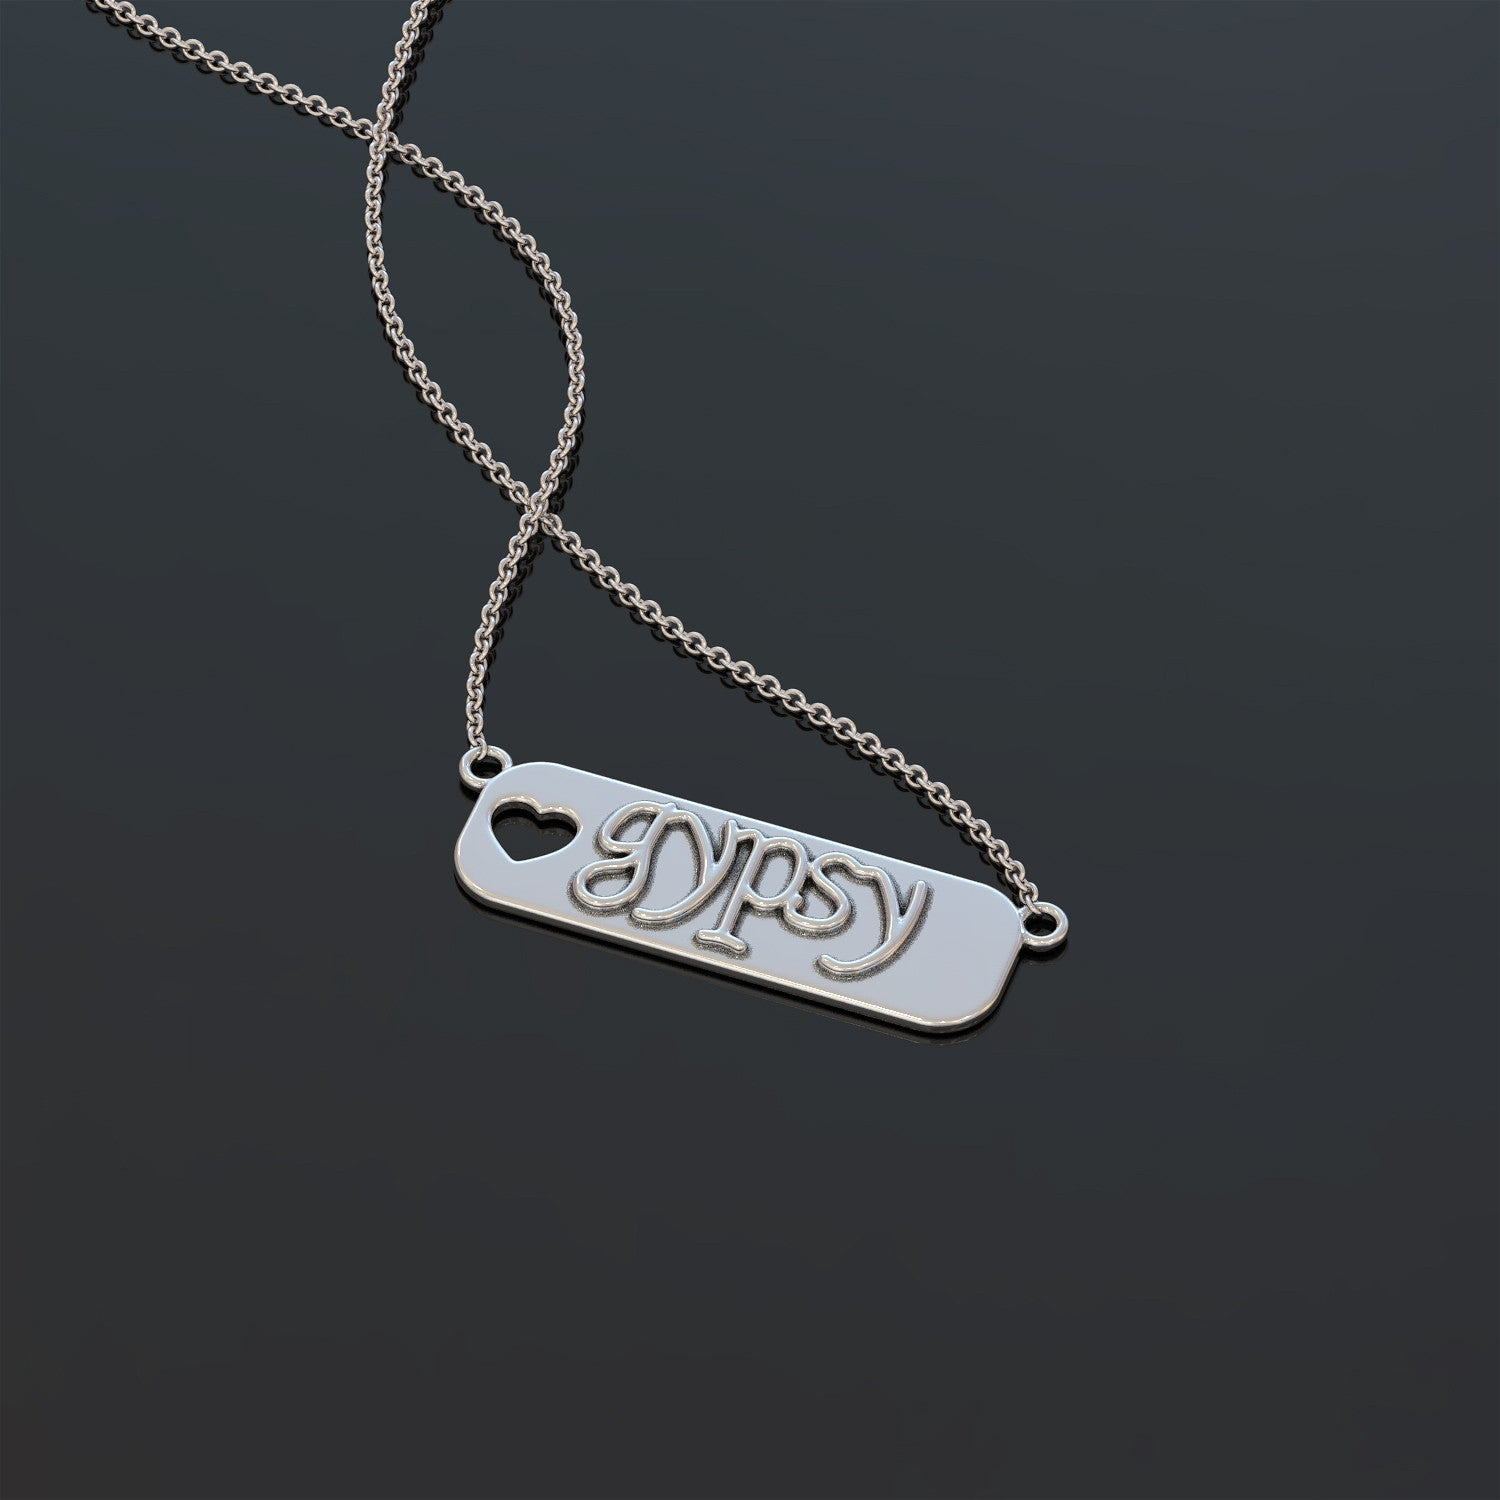 Gypsy Bar Necklace